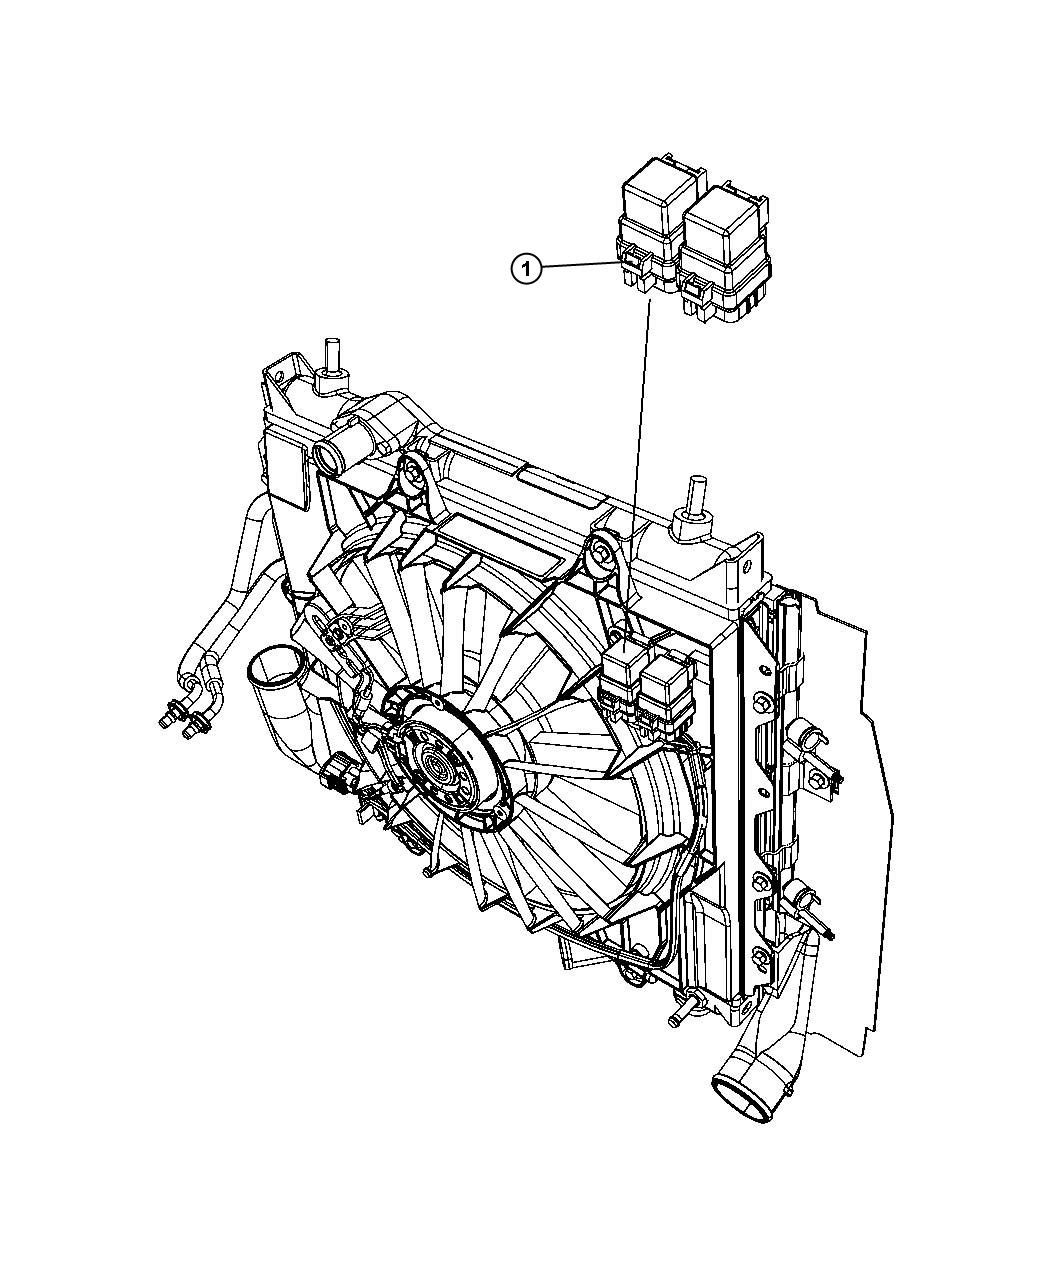 ShowAssembly on 2001 nissan sentra air conditioning diagram